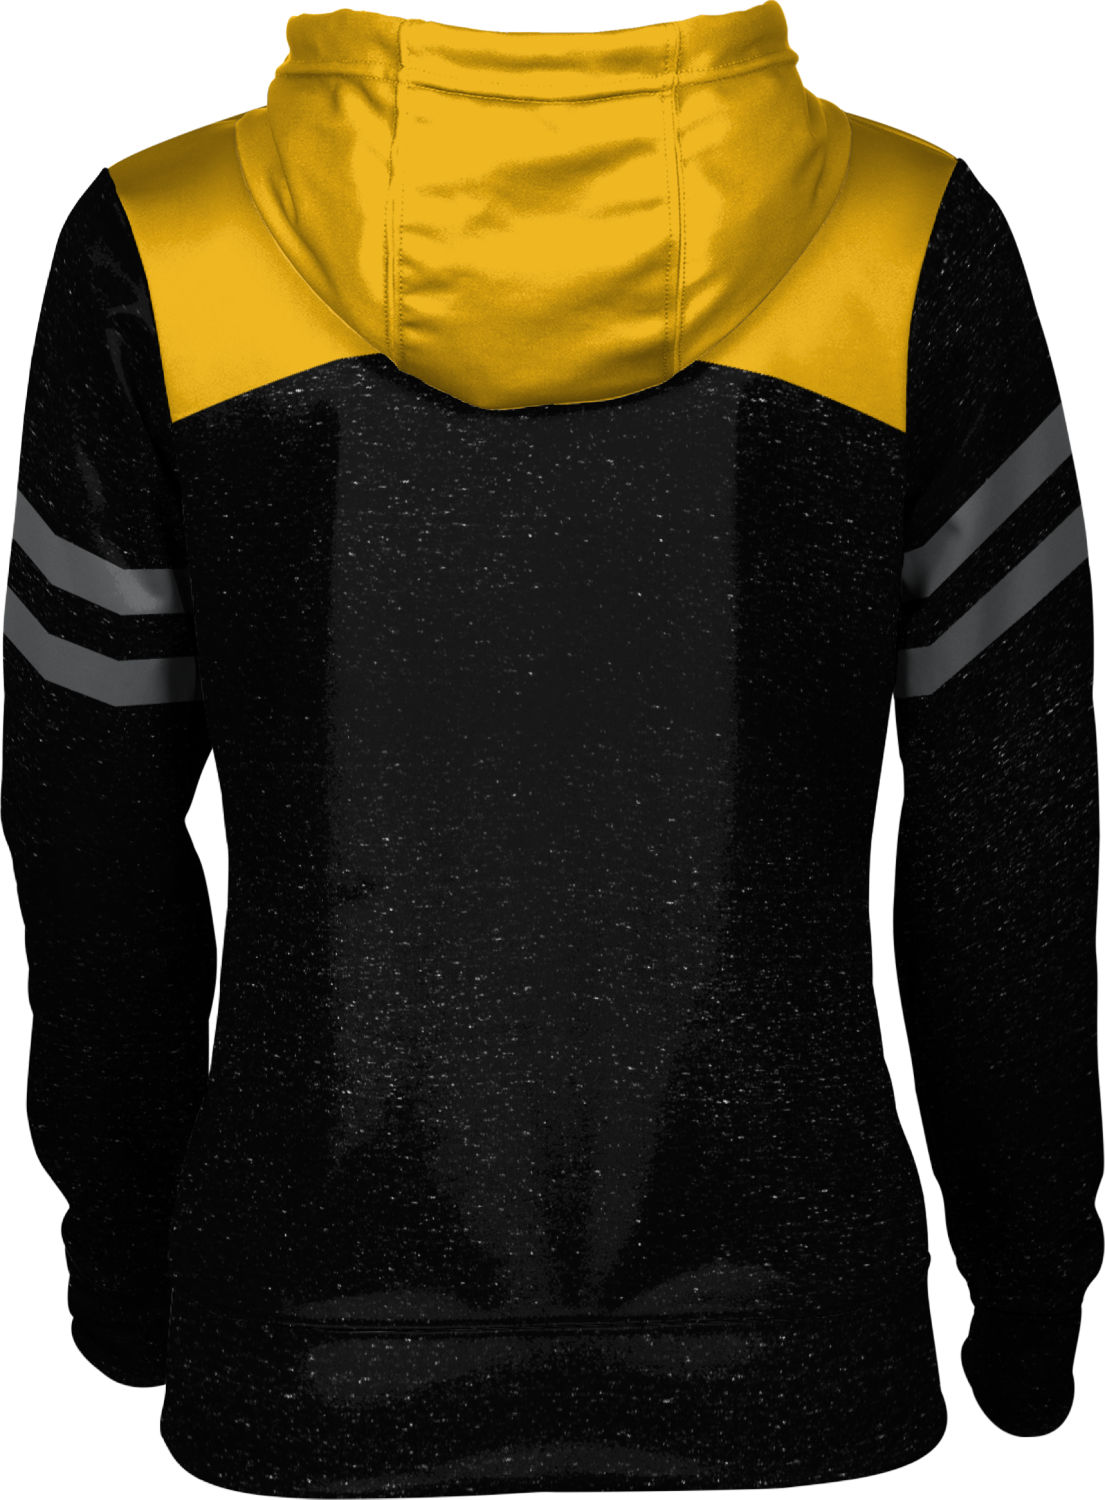 Gameday ProSphere Grambling State University Girls Pullover Hoodie School Spirit Sweatshirt